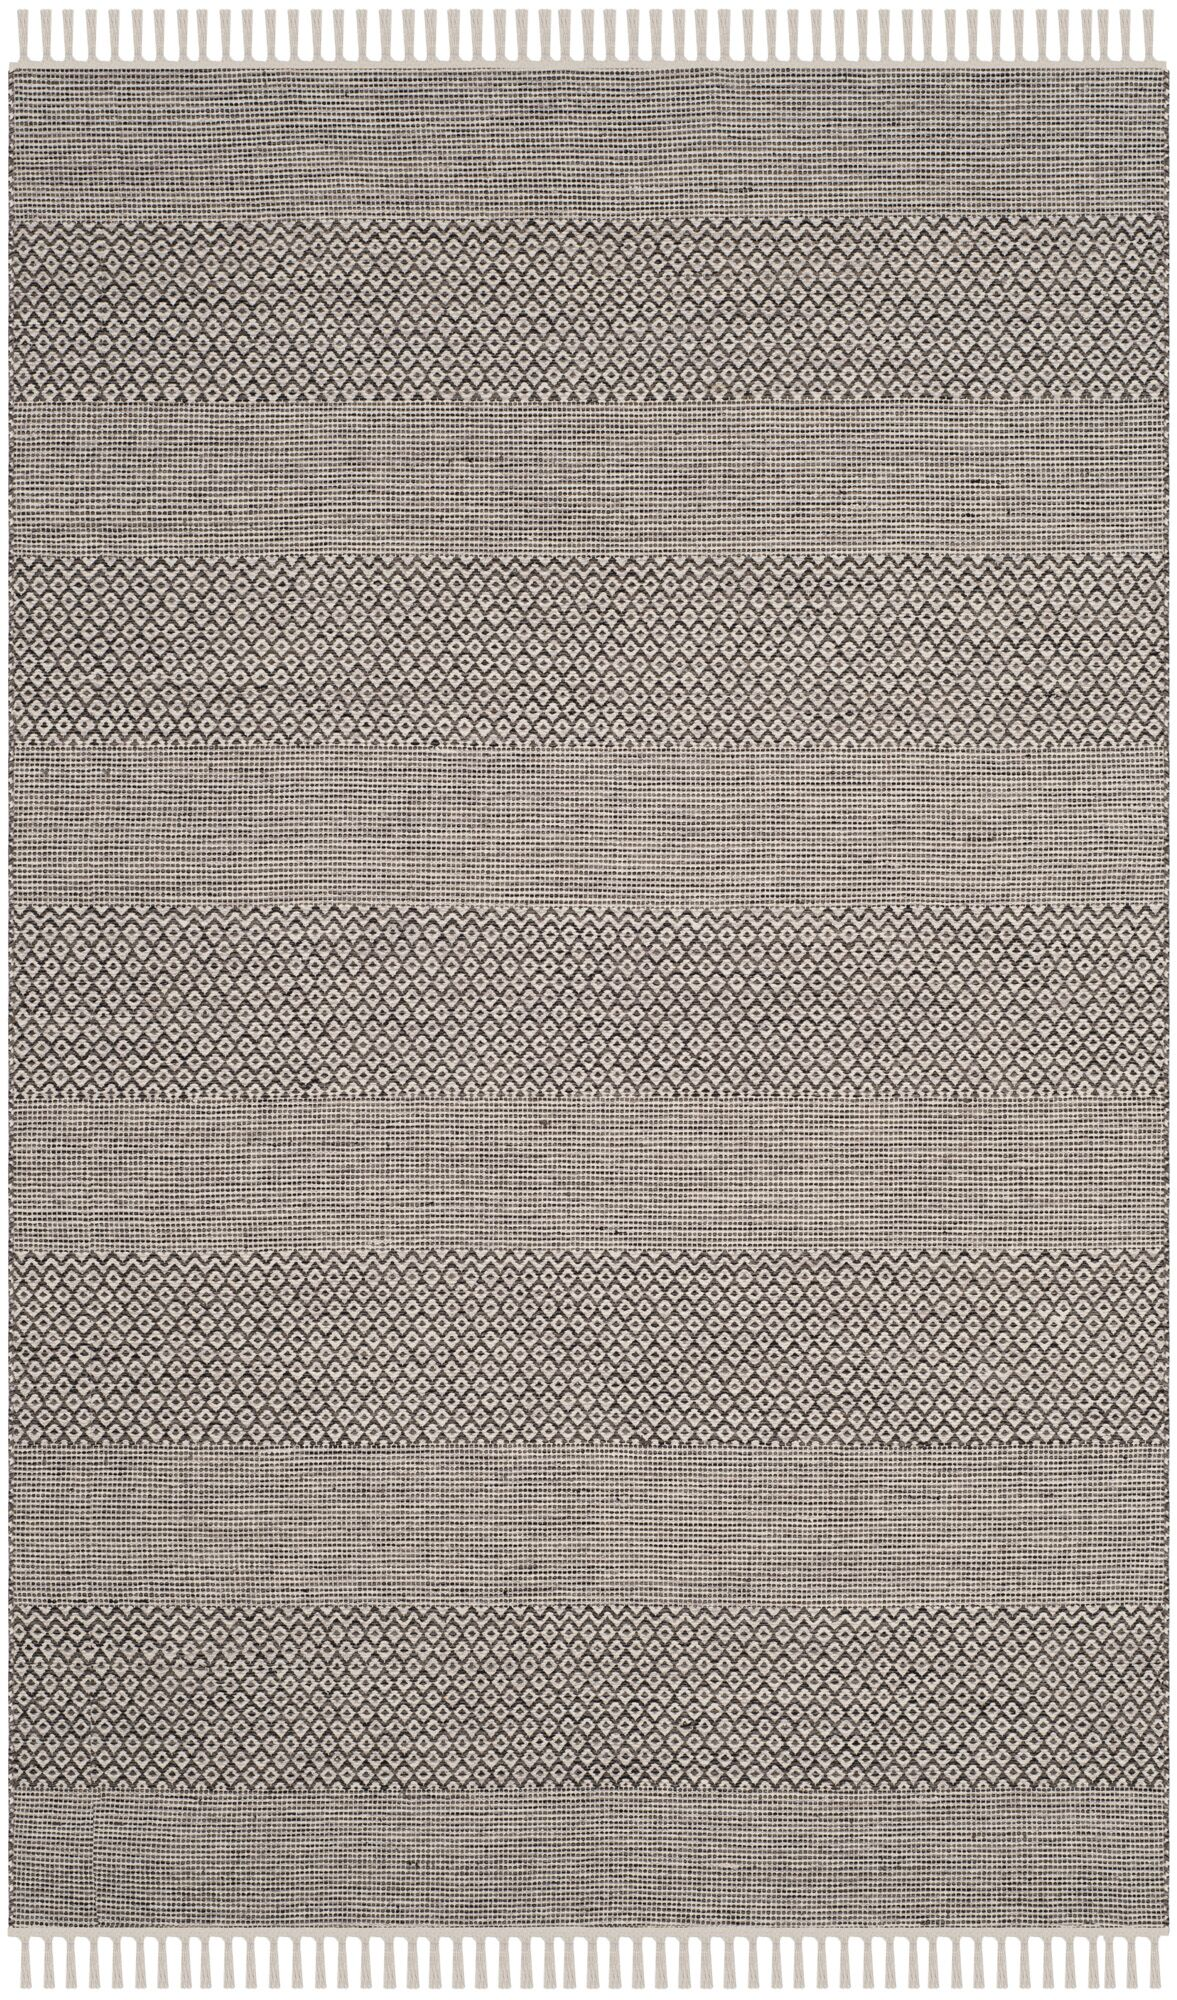 Oxbow Hand-Woven Ivory/Anthracite Area Rug Rug Size: Rectangle 6' x 9'